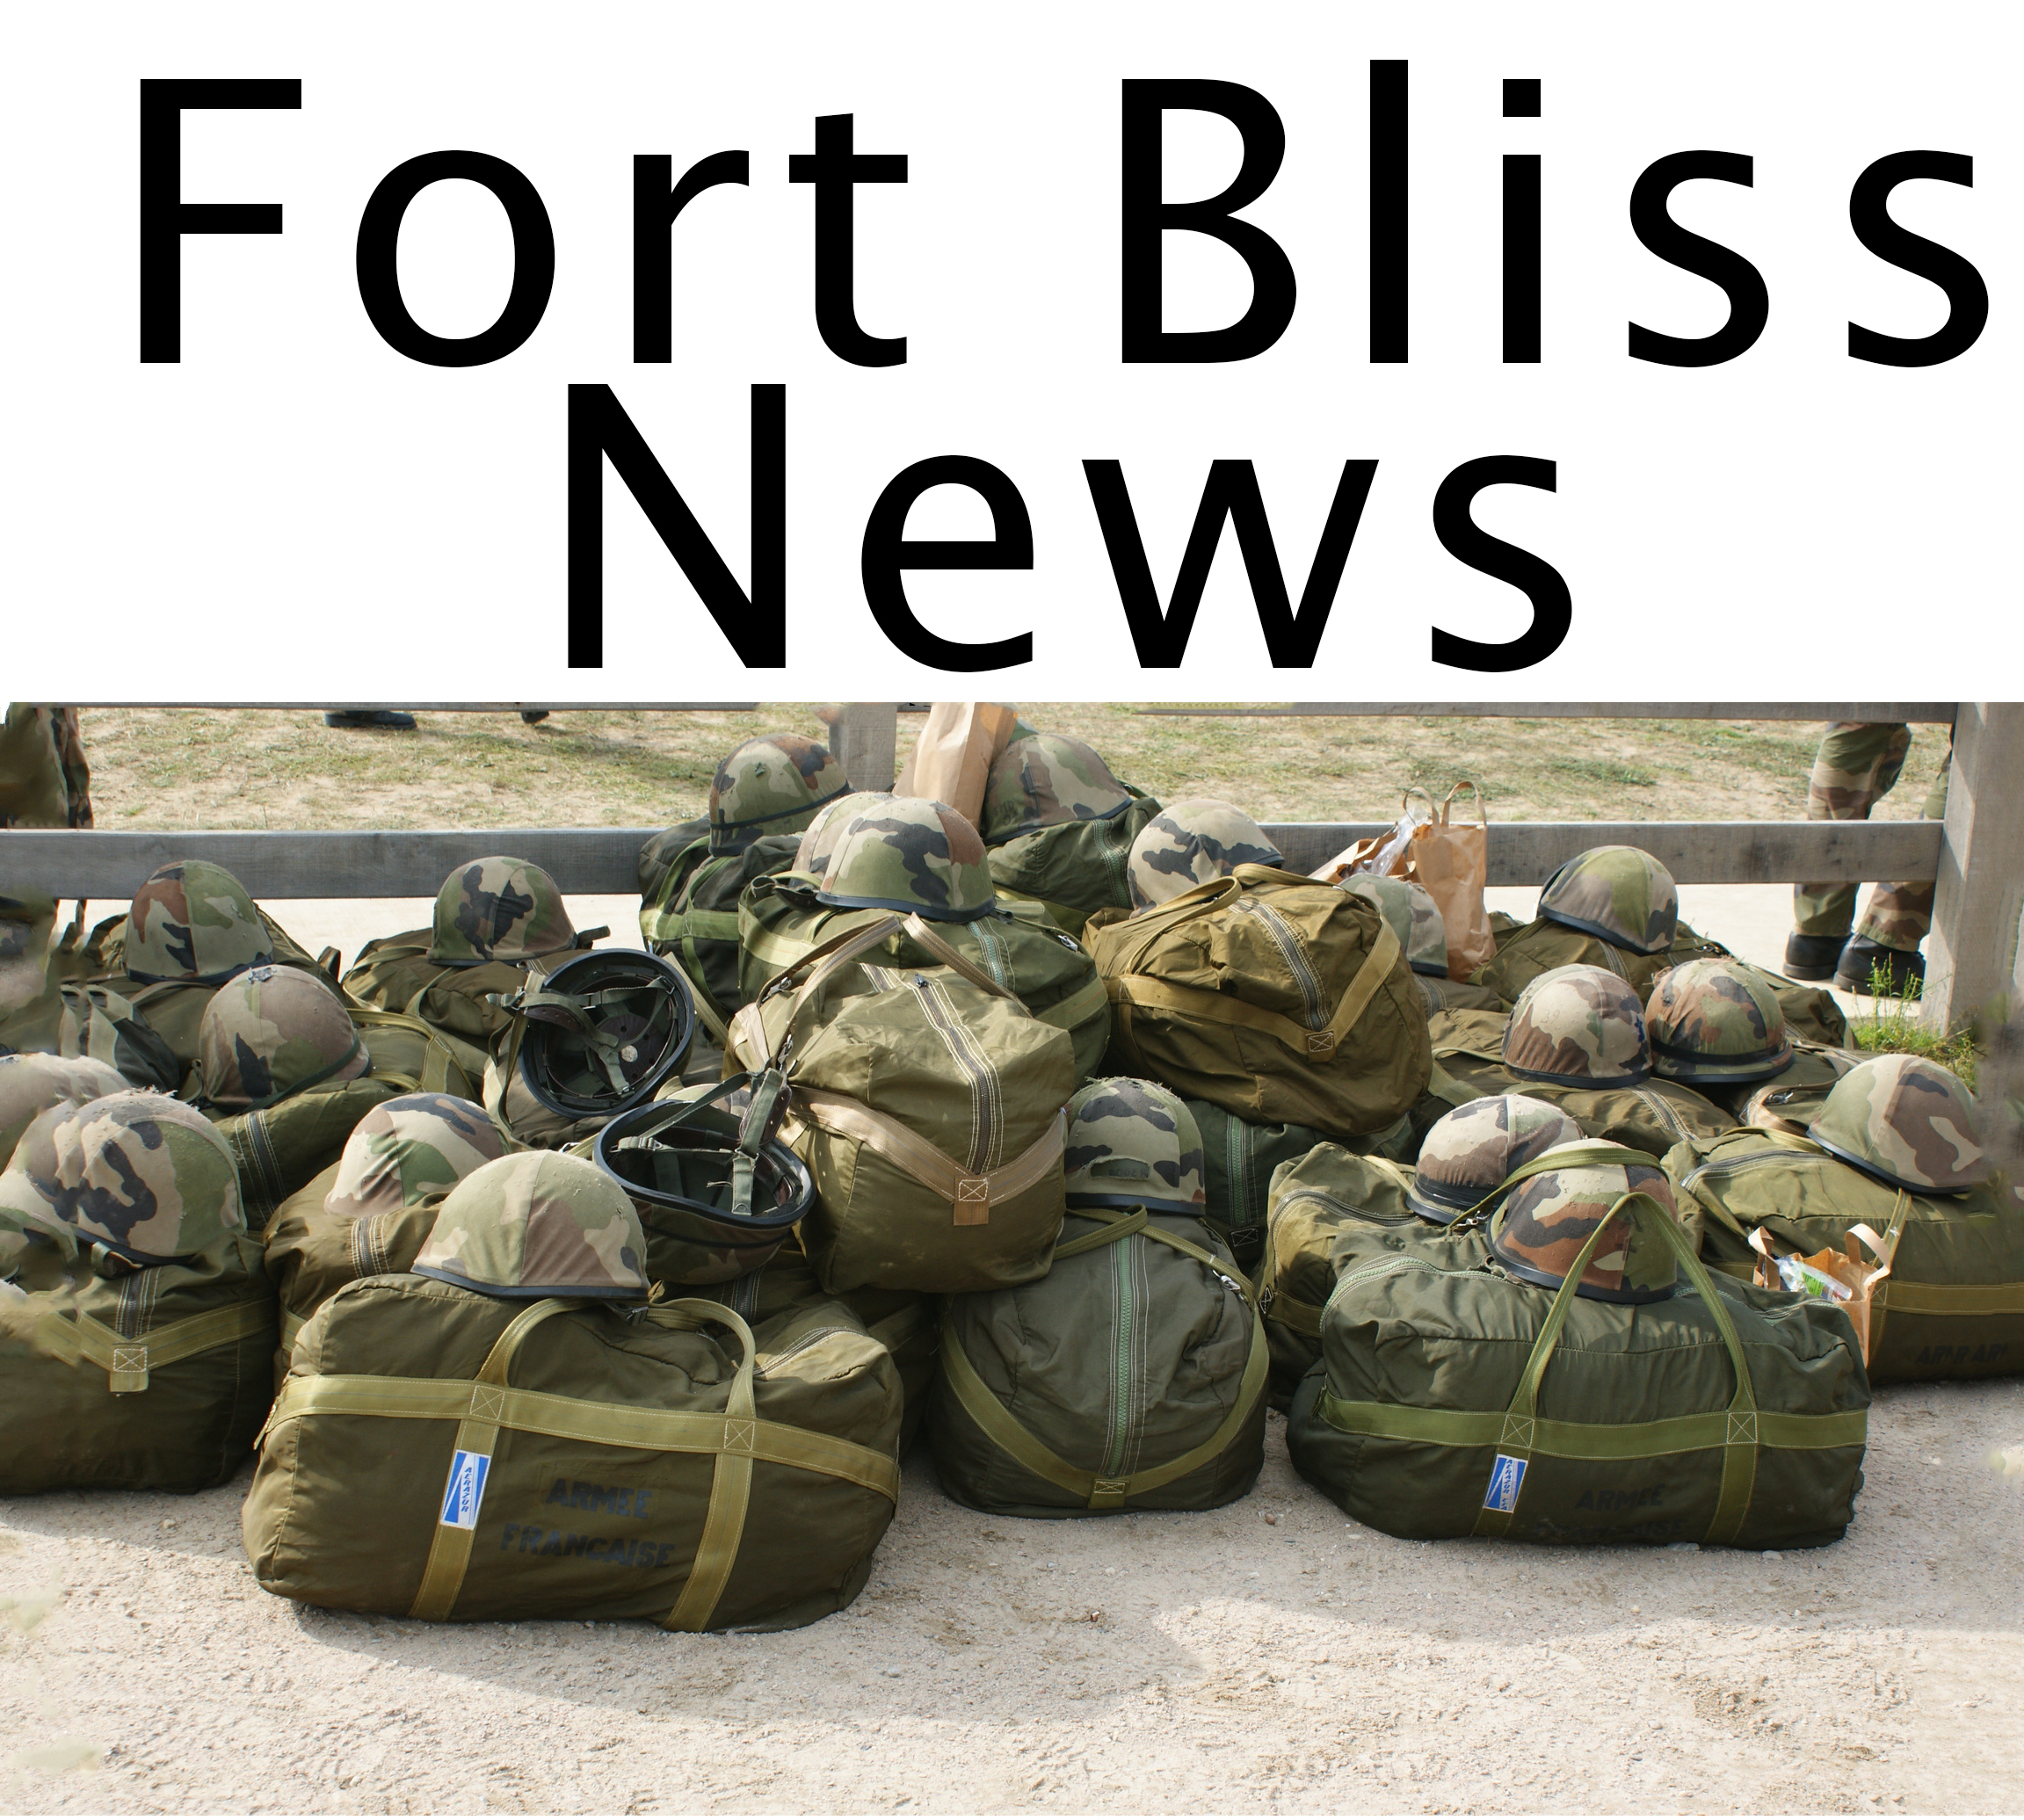 Fort Bliss News